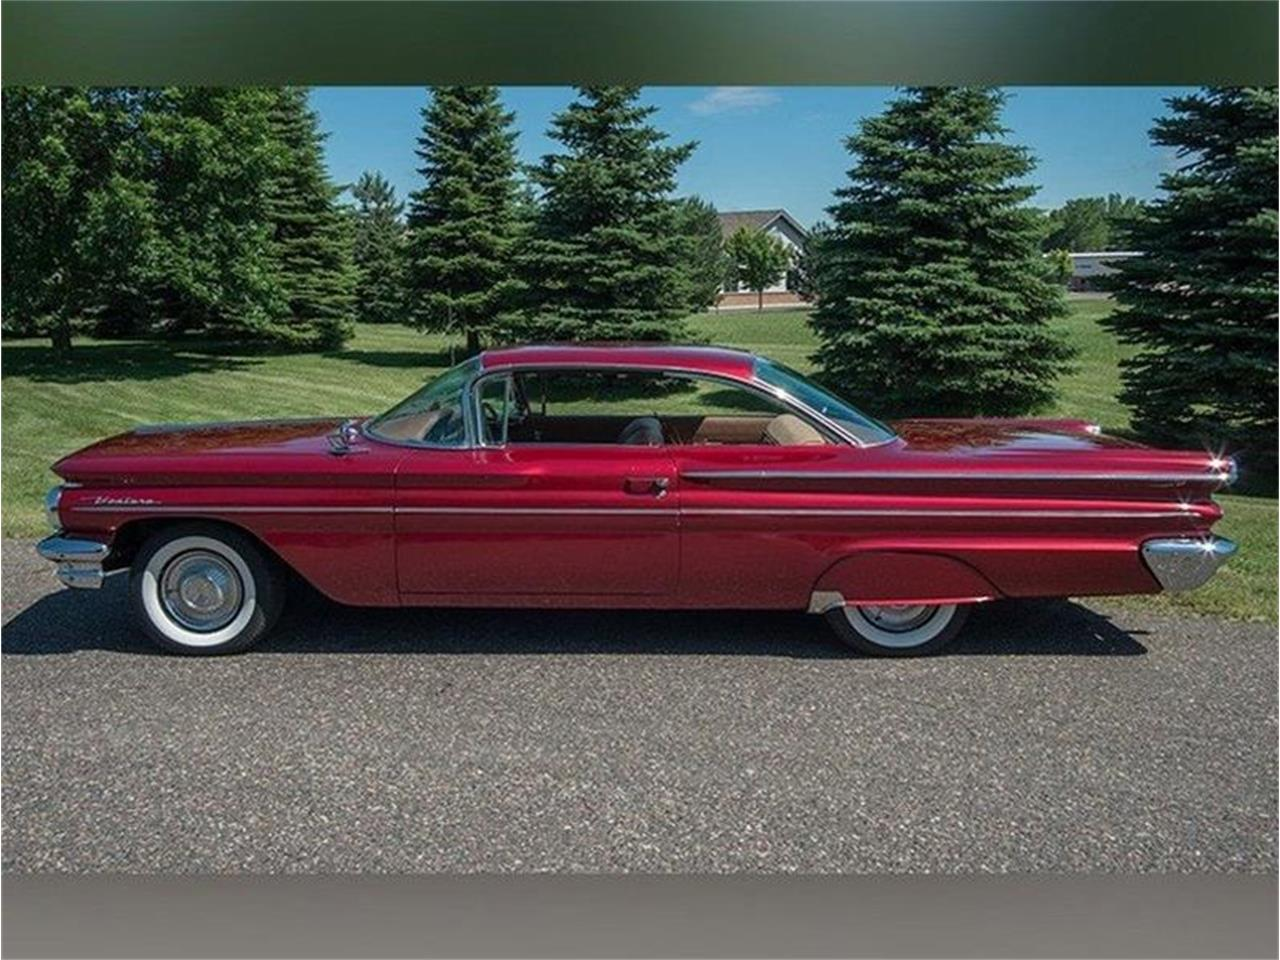 Large Picture of Classic 1960 Pontiac Ventura located in Rogers Minnesota - $26,950.00 - LHB7